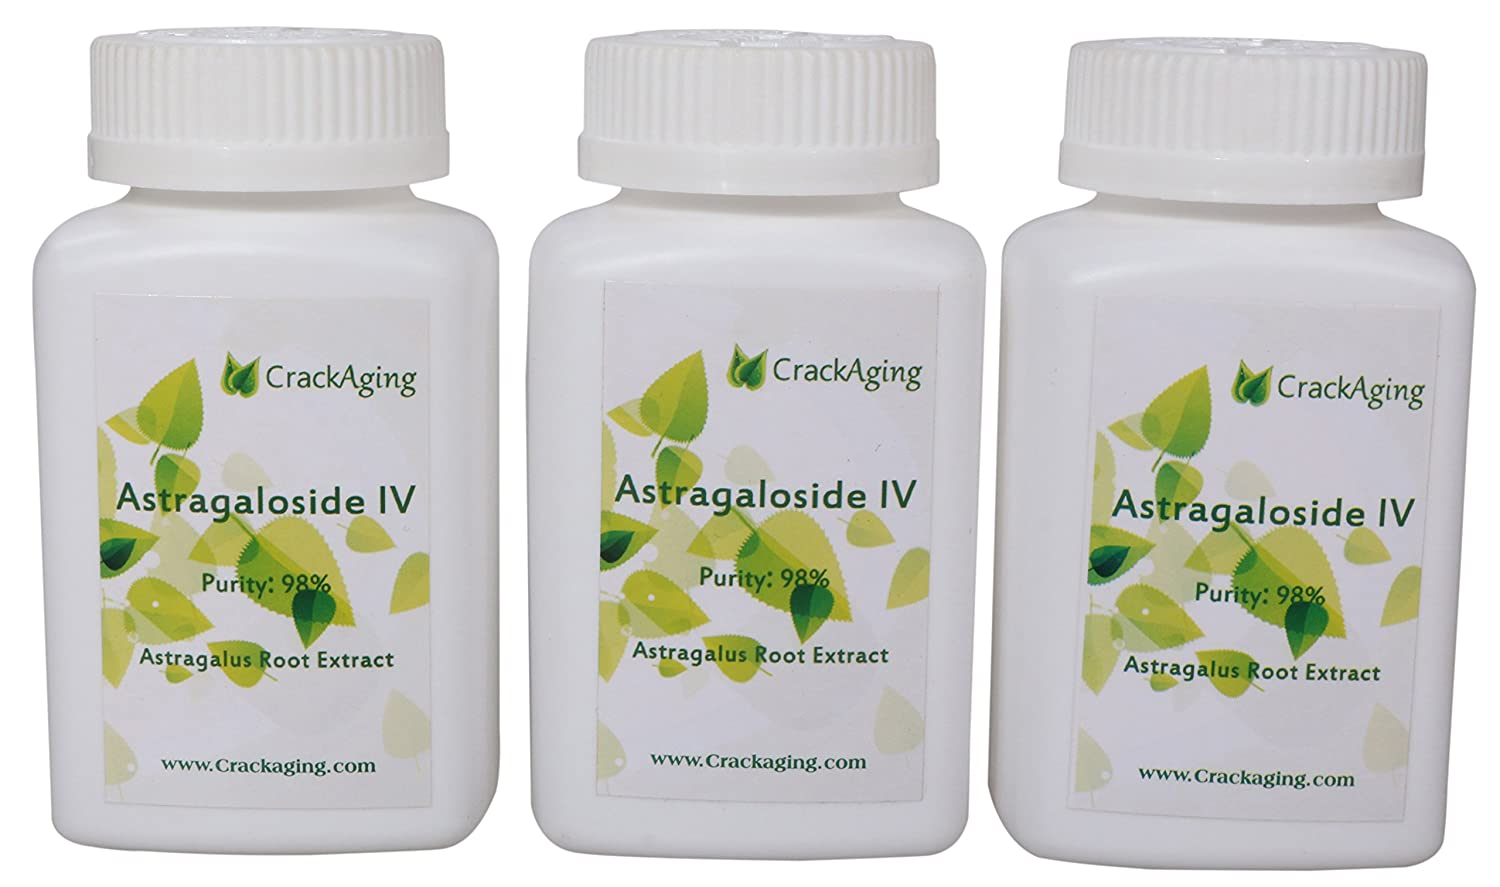 Super-Absorption Astragaloside IV 98 – Anti-Aging Supplement Brand crackaging 50mg Cap 90 Caps in 3 Bottles